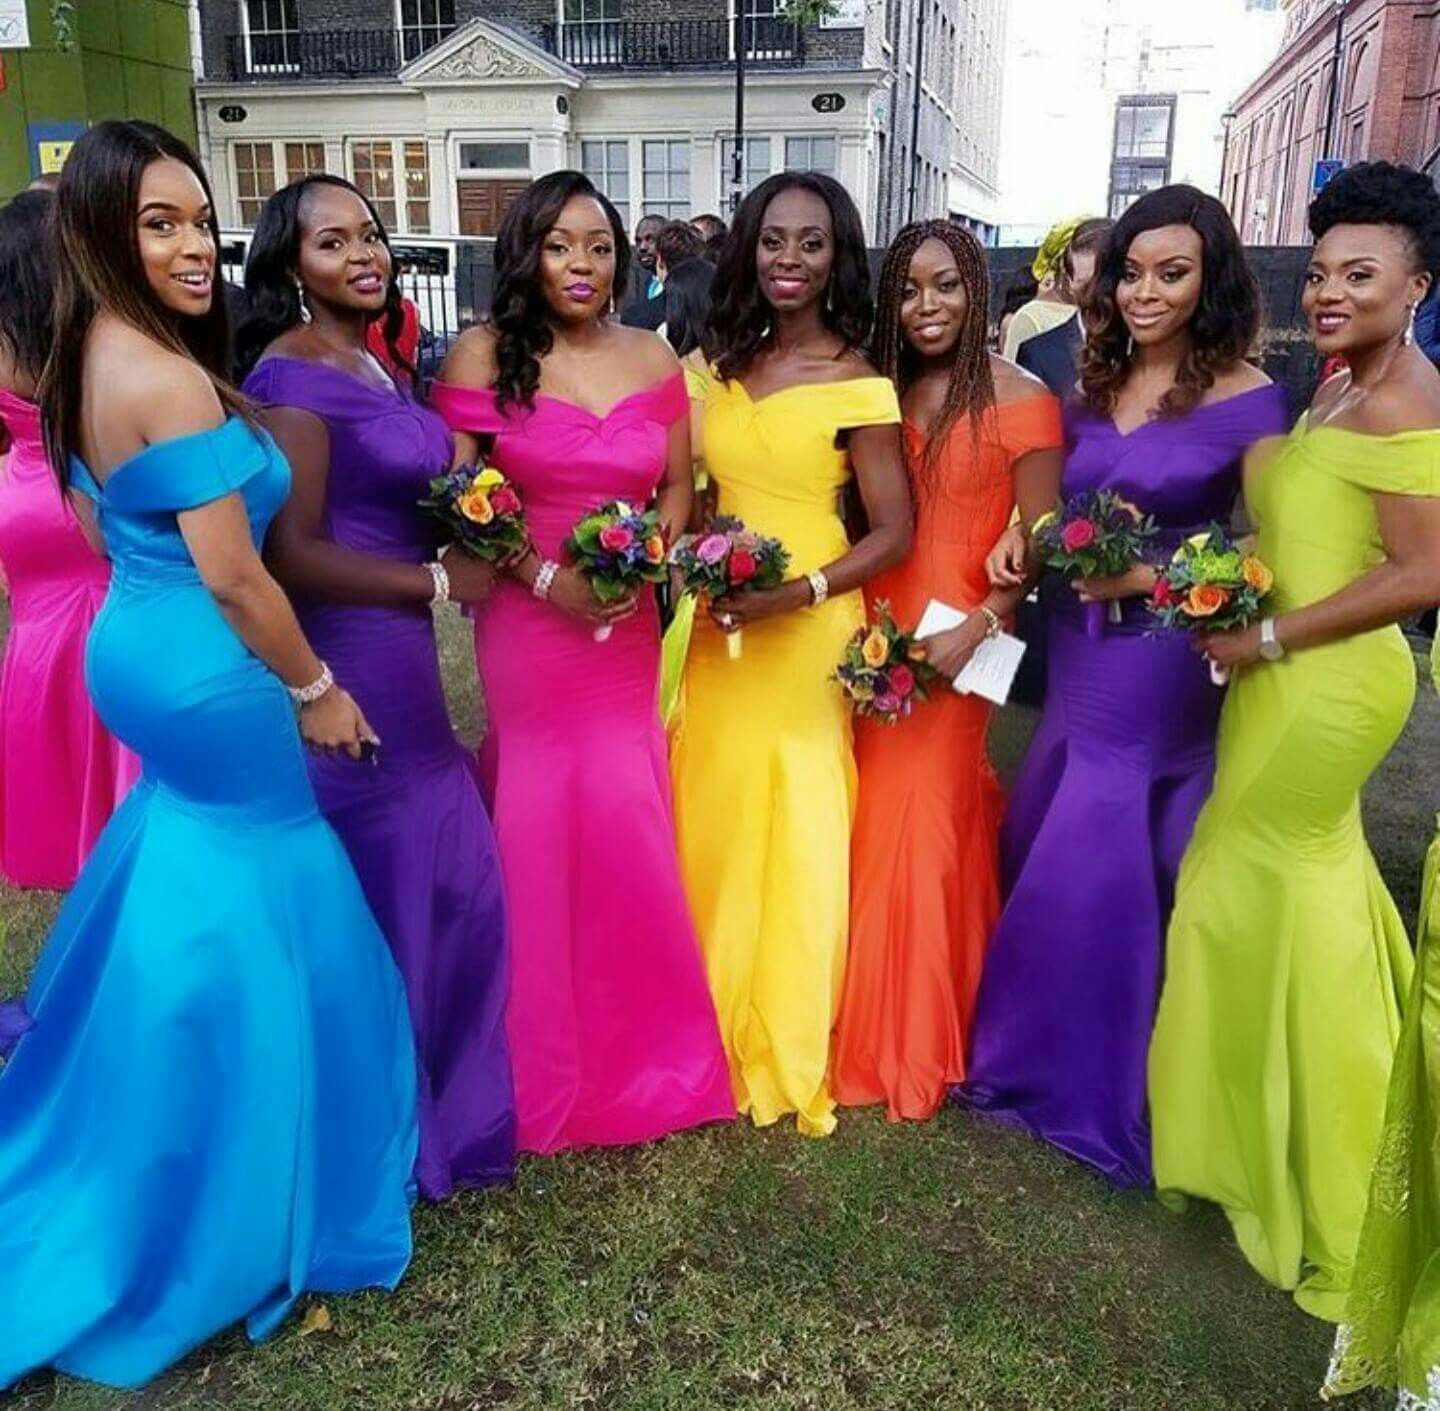 Rainbow bridesmaid dresses wedding attire pinterest rainbow rainbow bridesmaid dresses ombrellifo Image collections